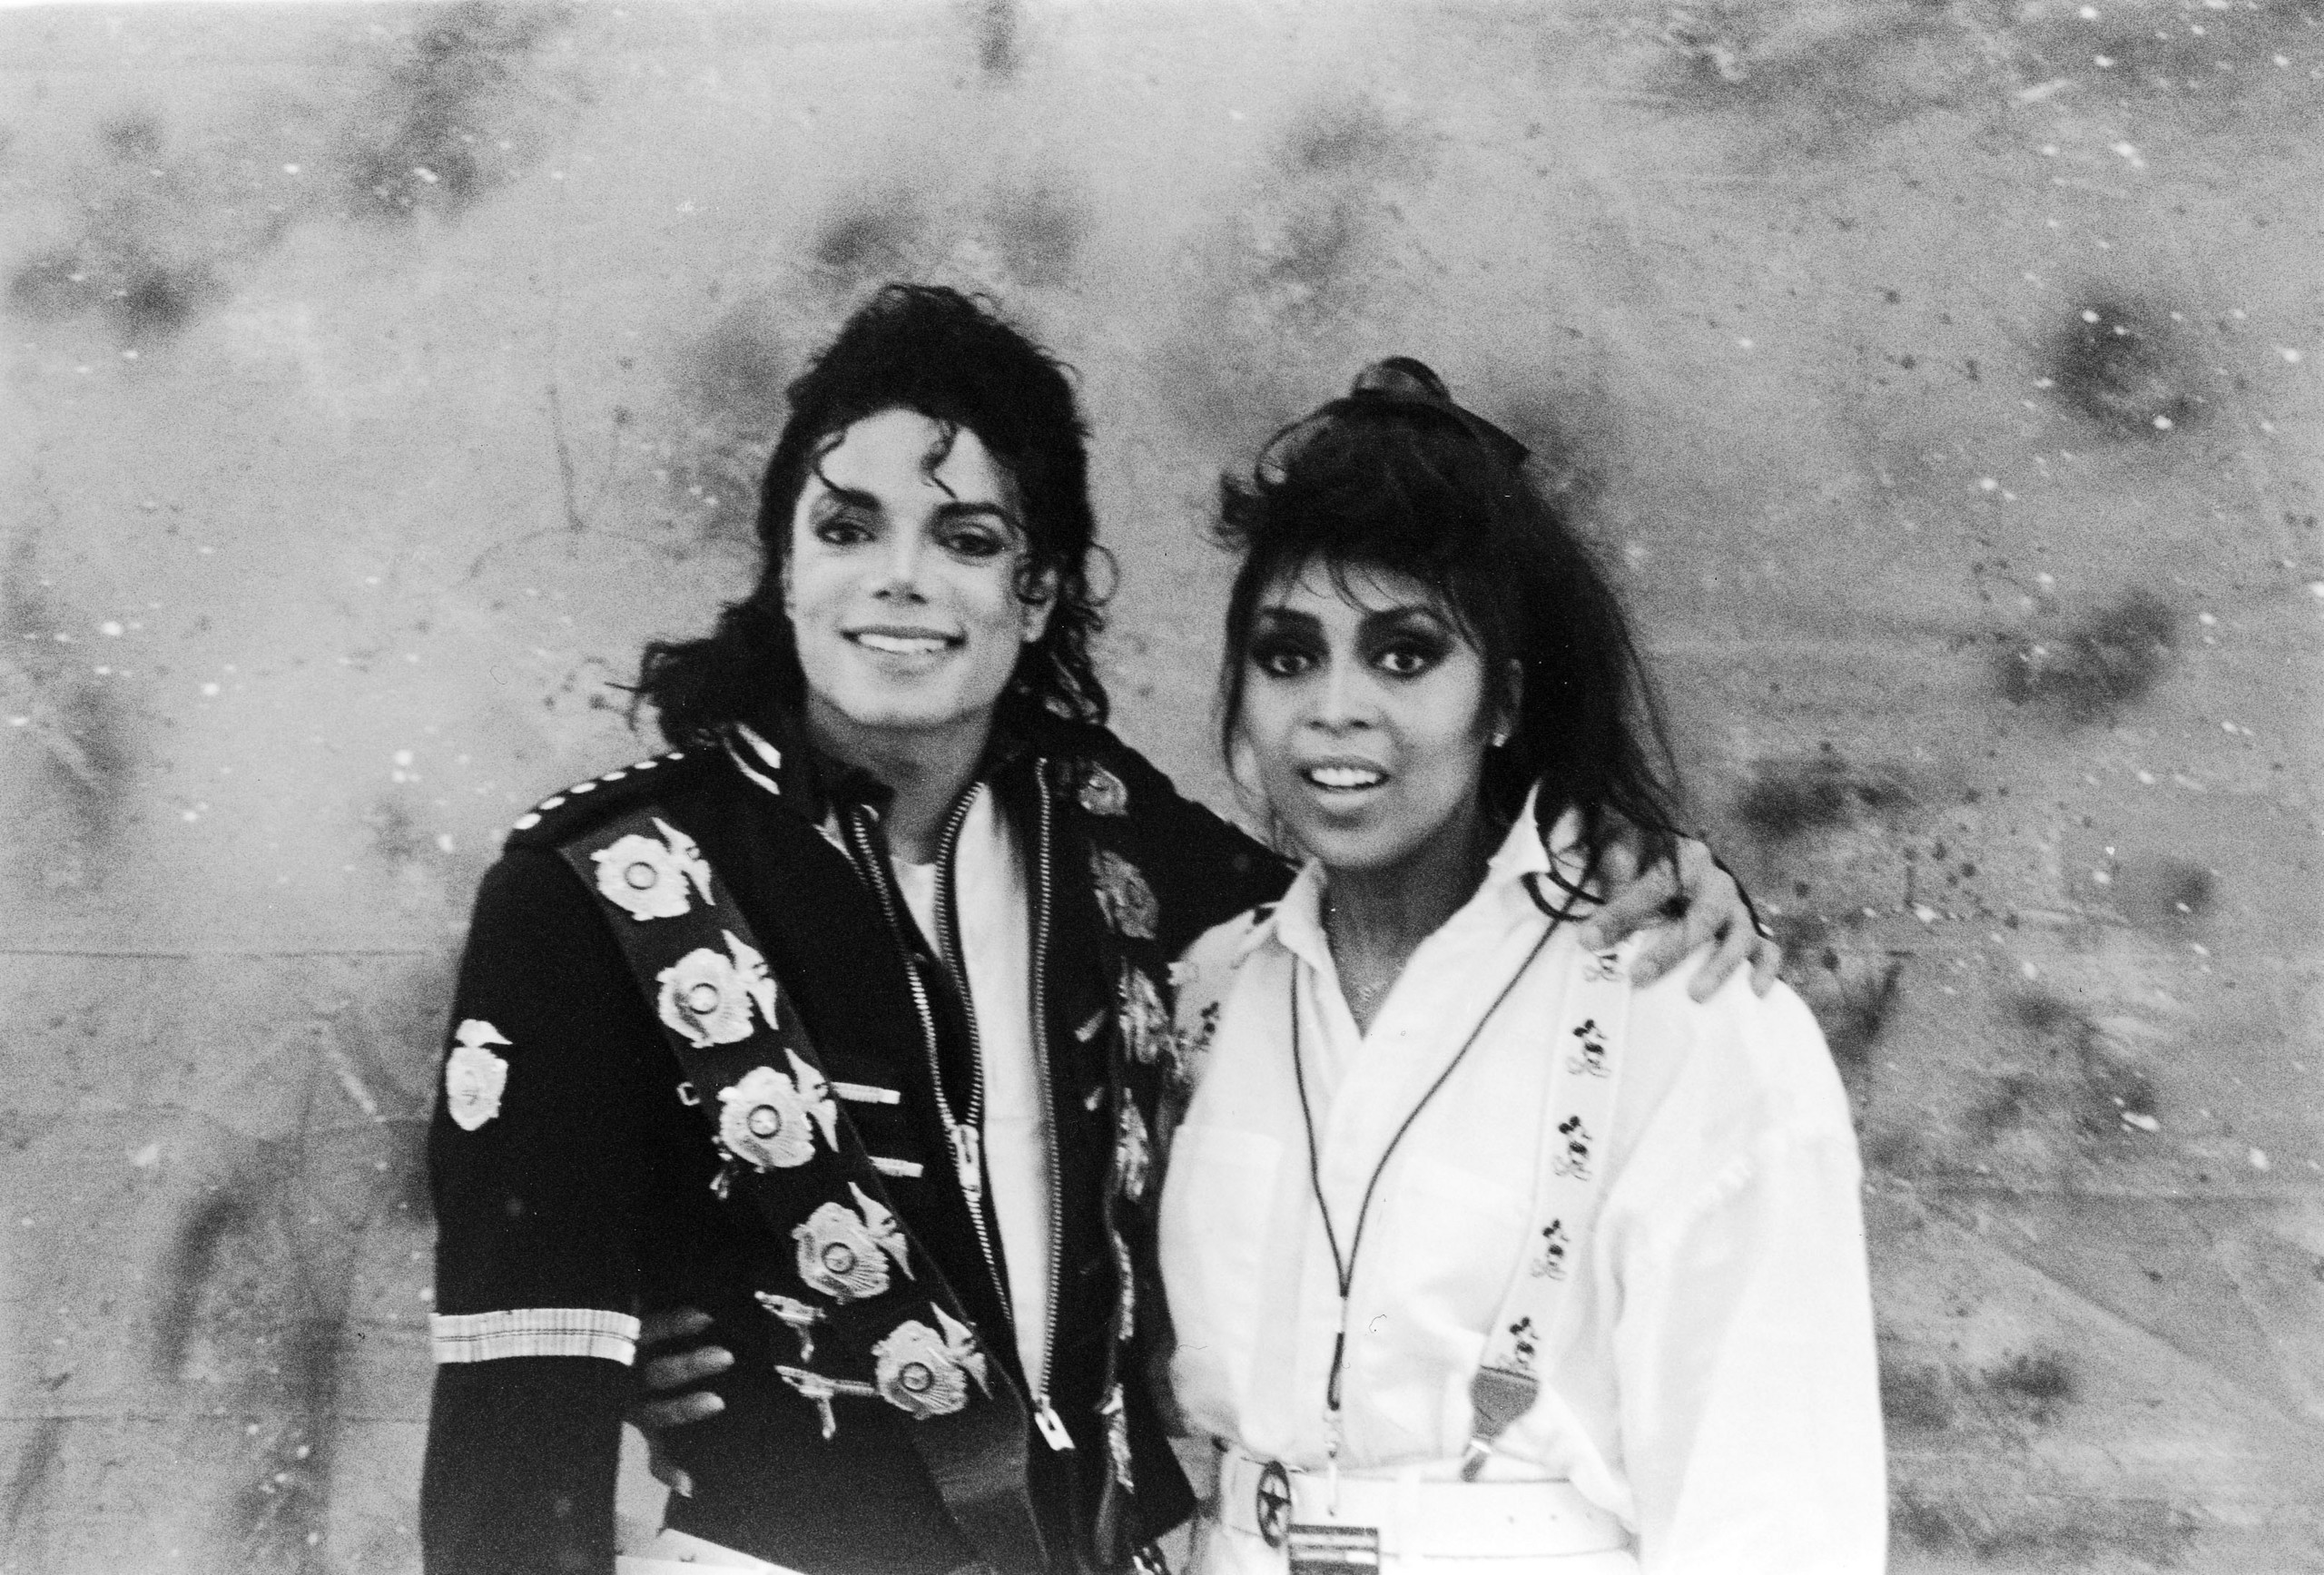 Michael Jackson and Diana Ross or Diana Ross's Sister idk